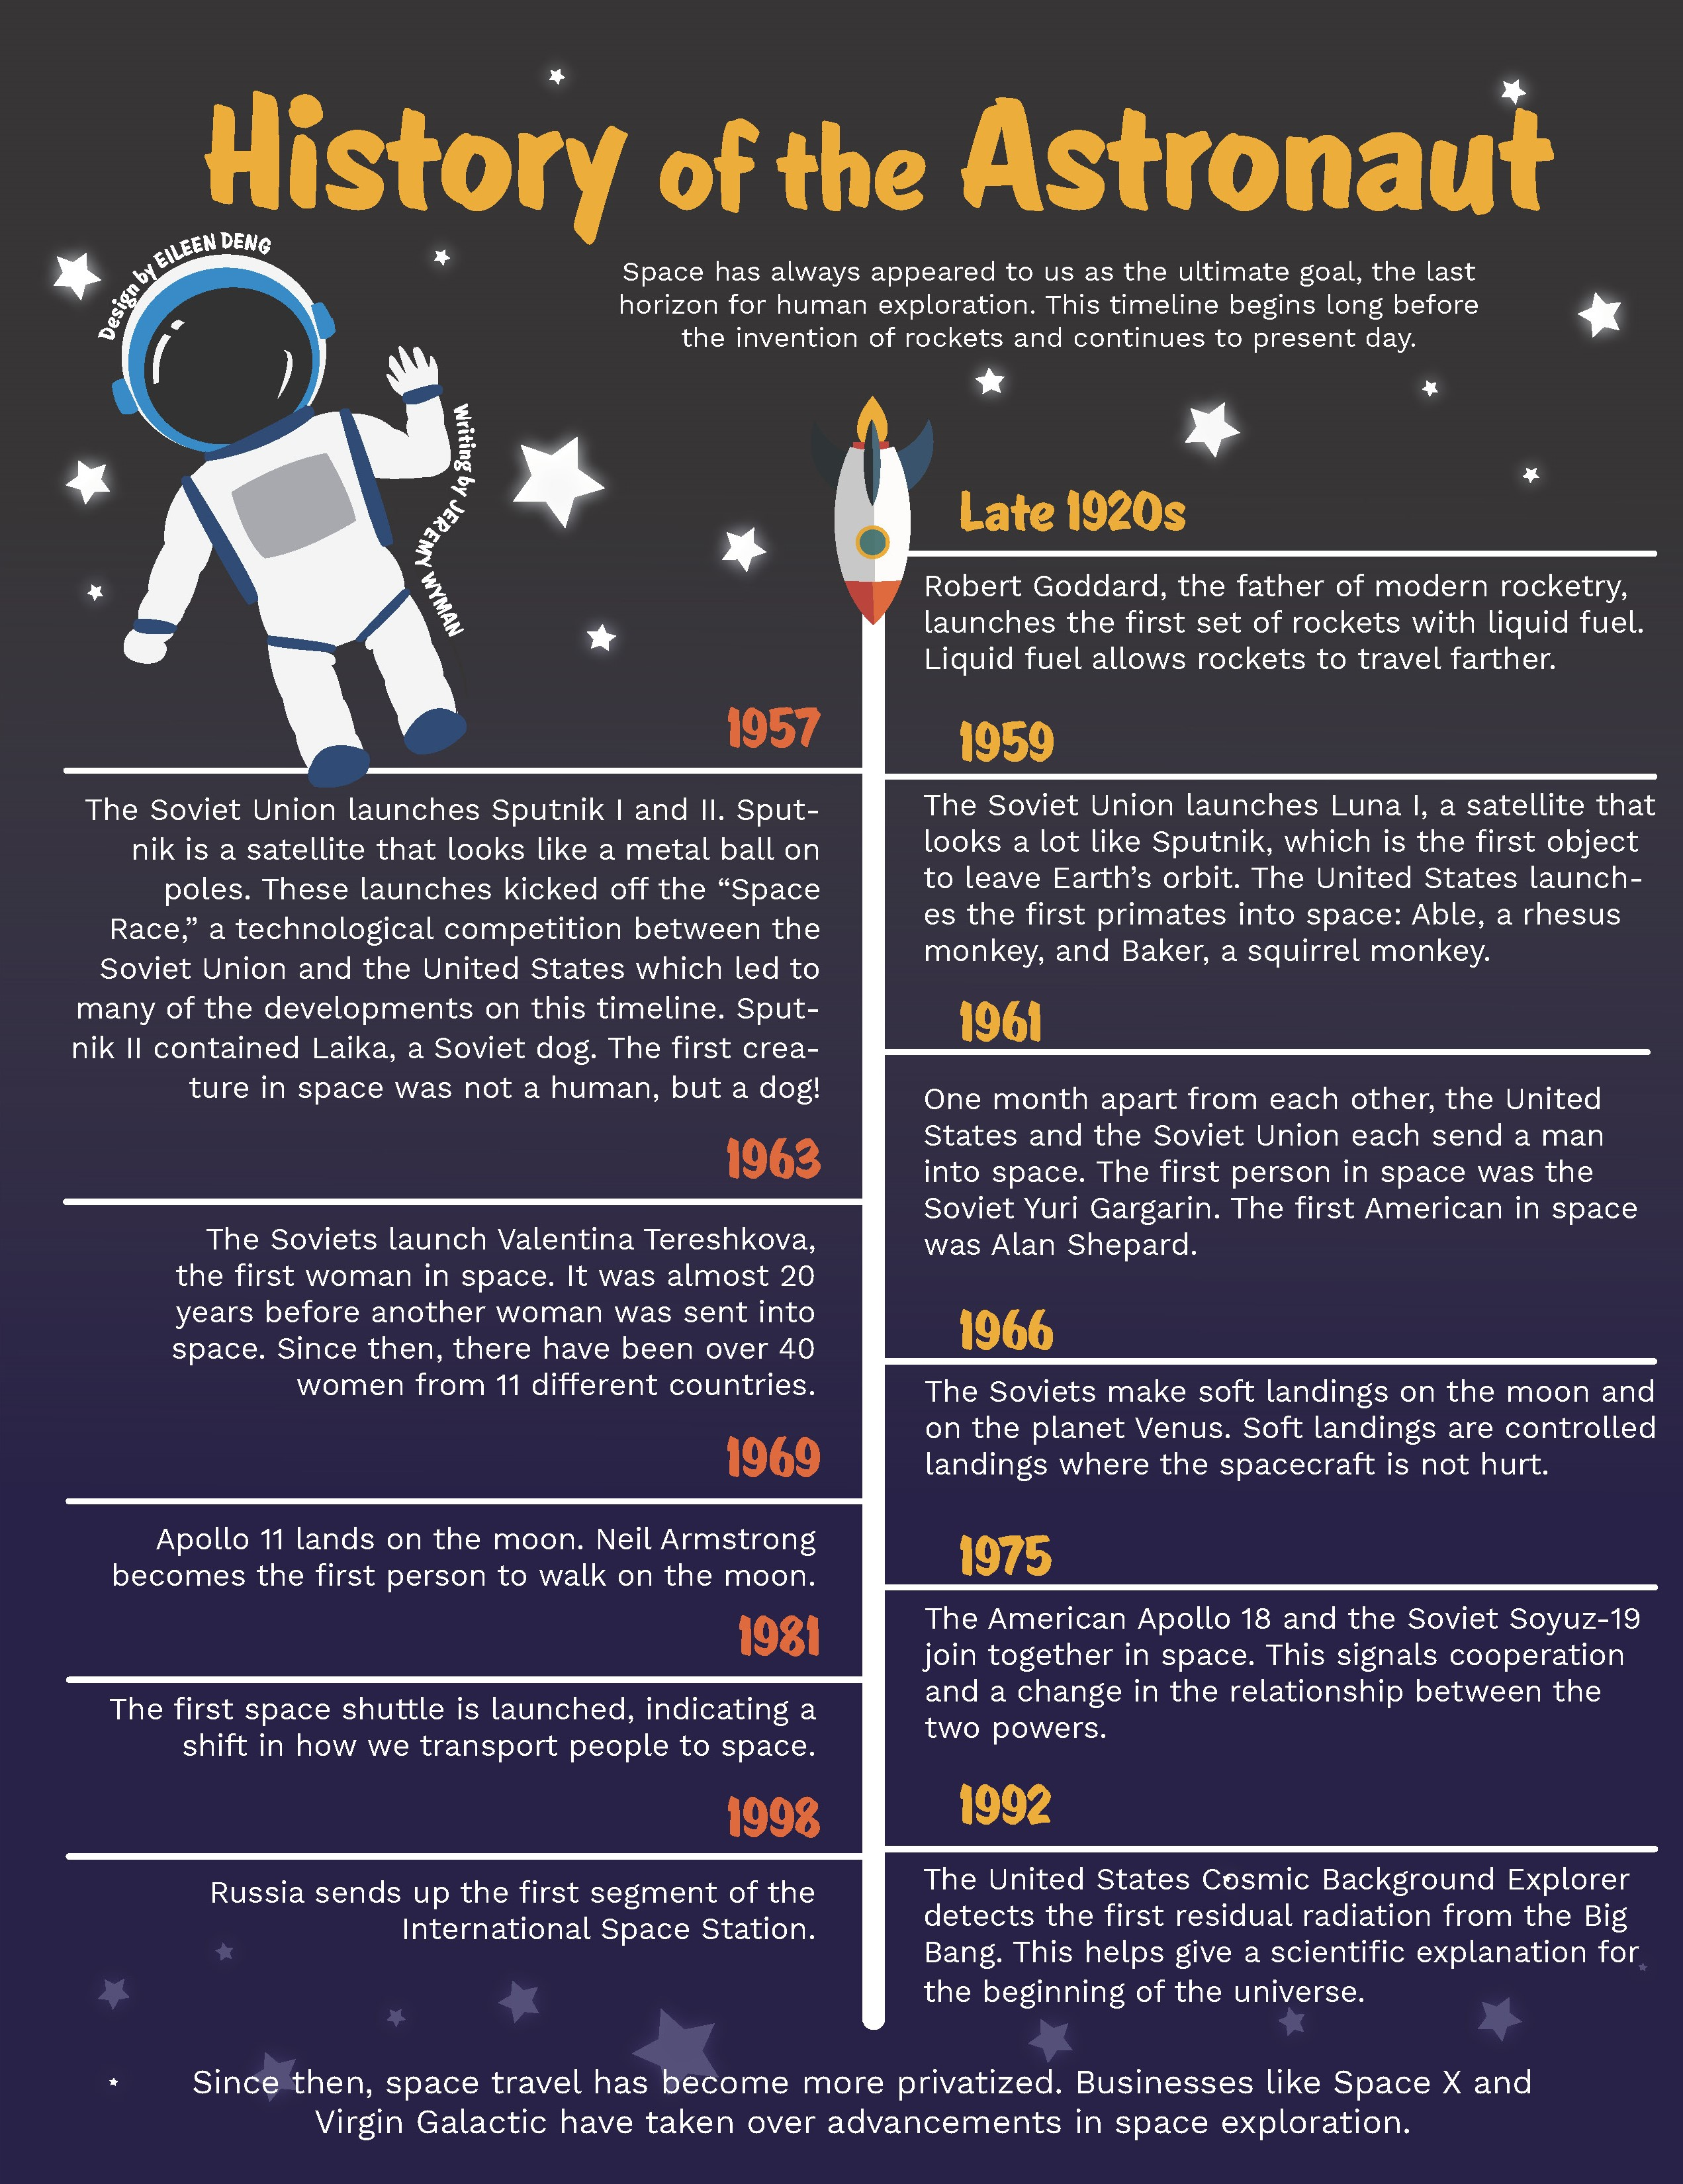 History of the Astronaut